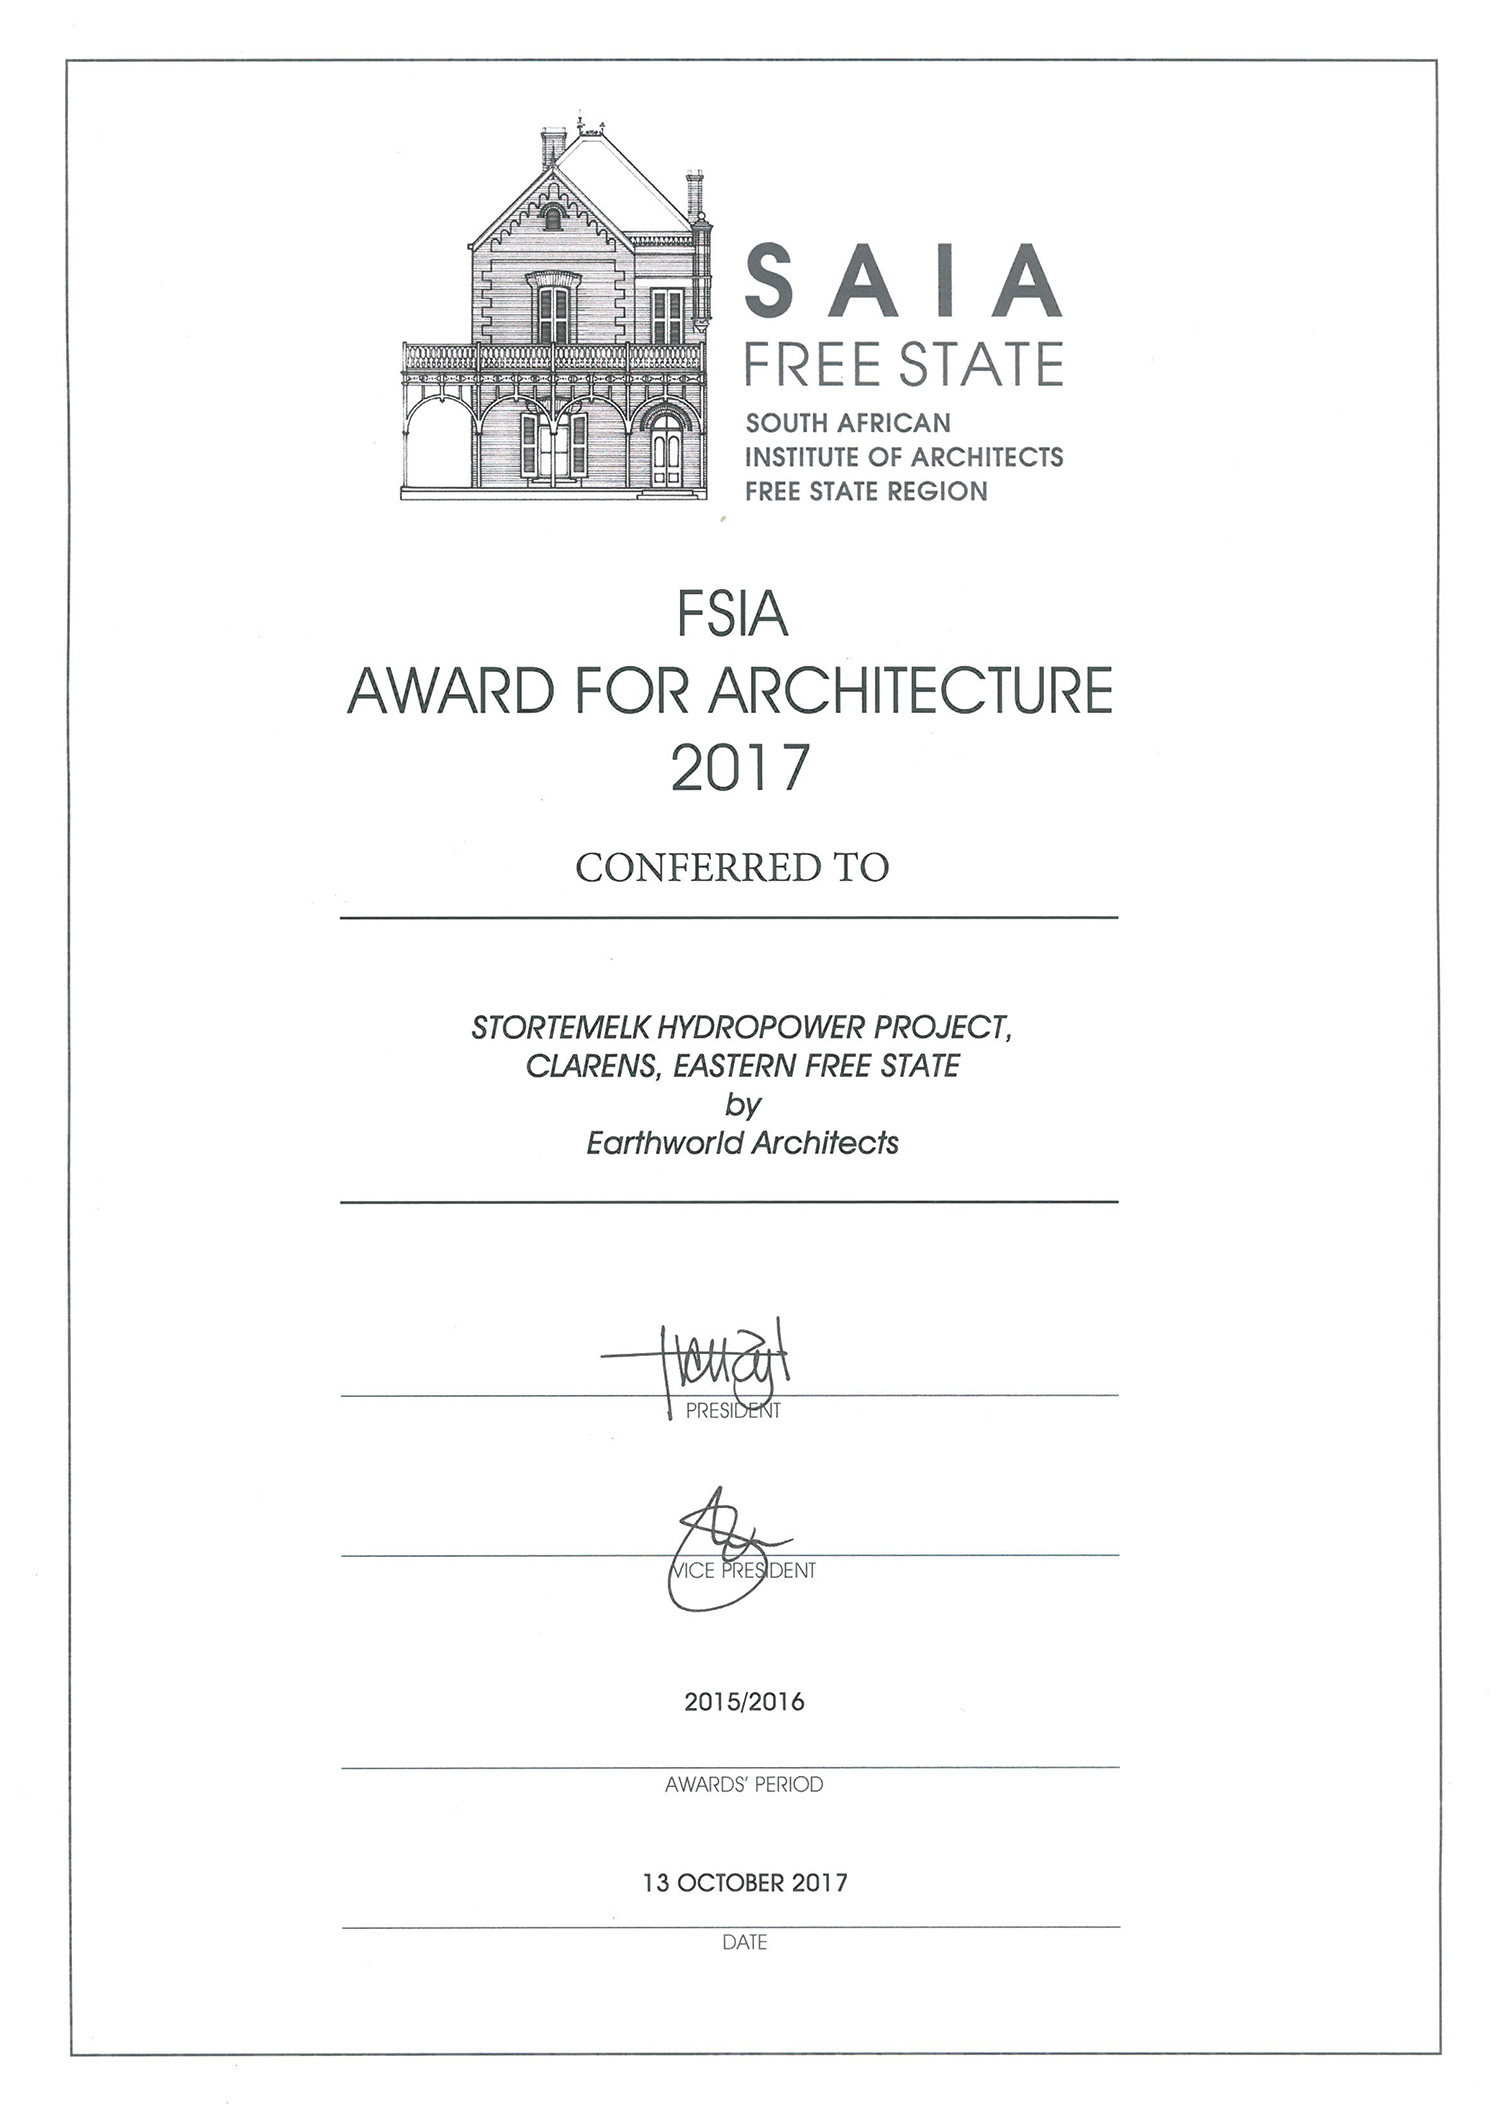 Stortemelk hydro has received a 2016 Award for Architecture from the South African Institute of Architects (Free State Region).